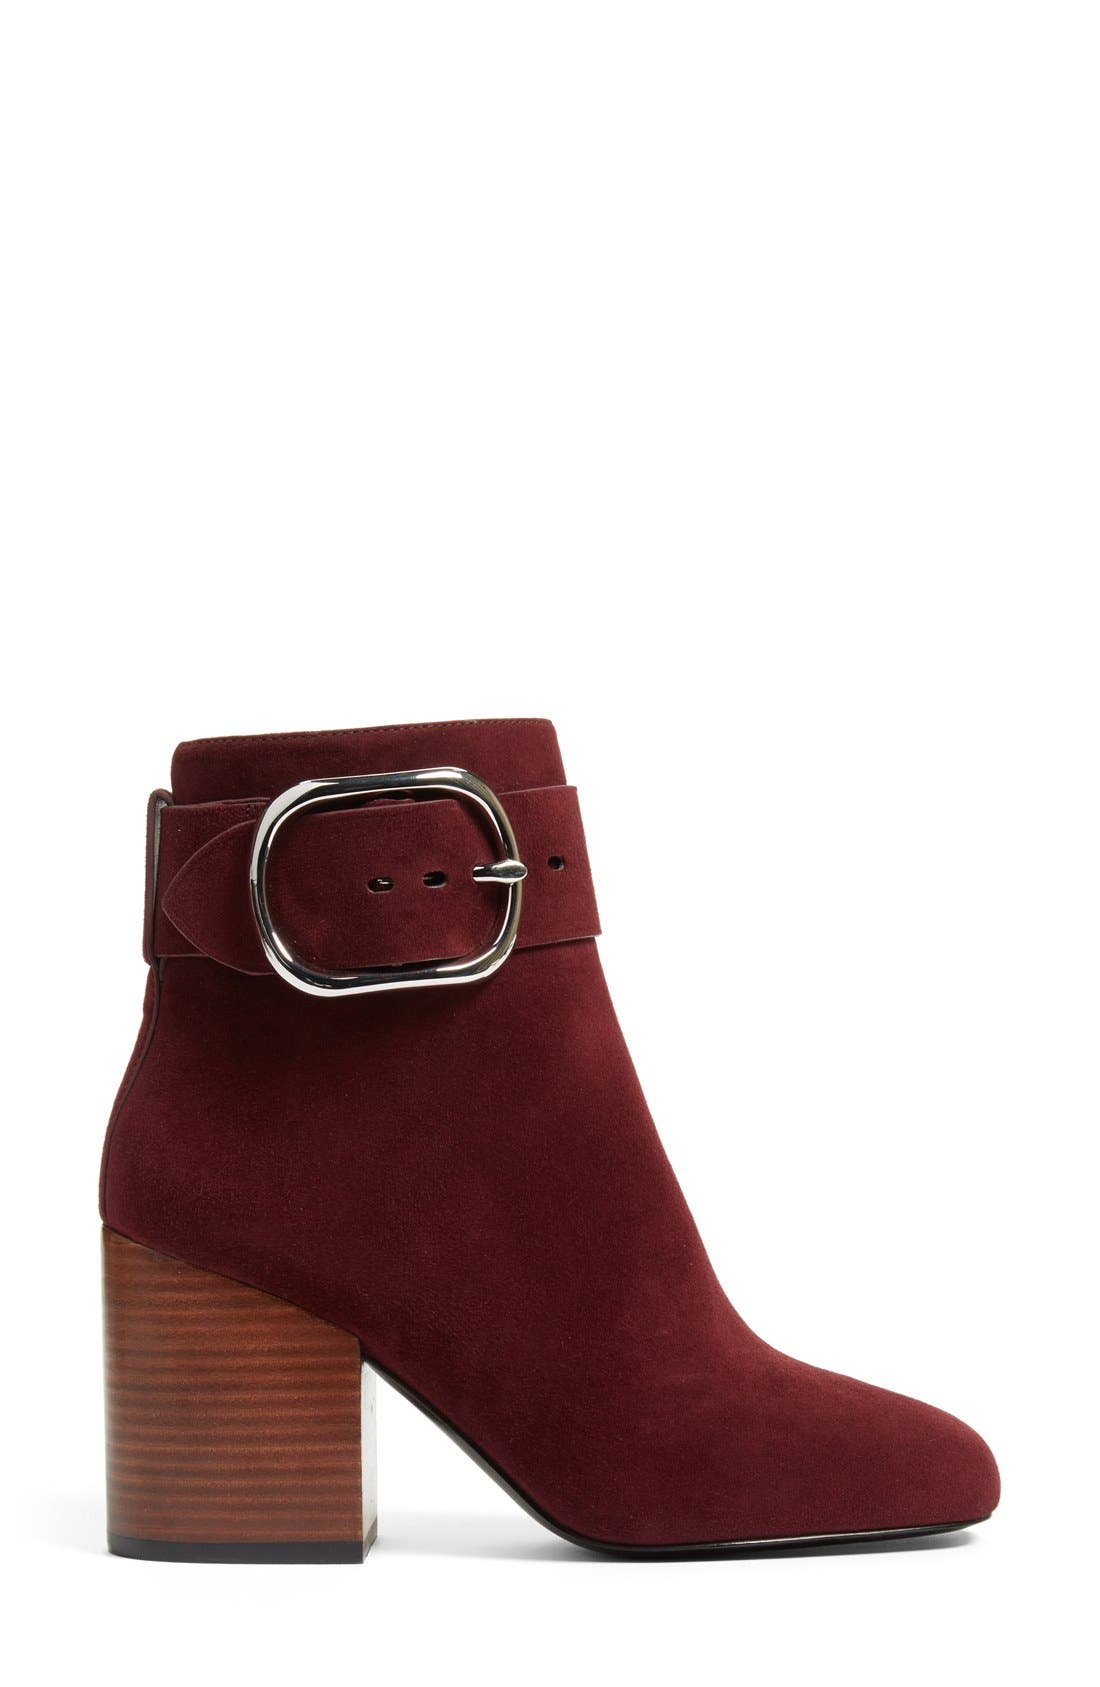 'Kenze' Bootie,                             Alternate thumbnail 4, color,                             930